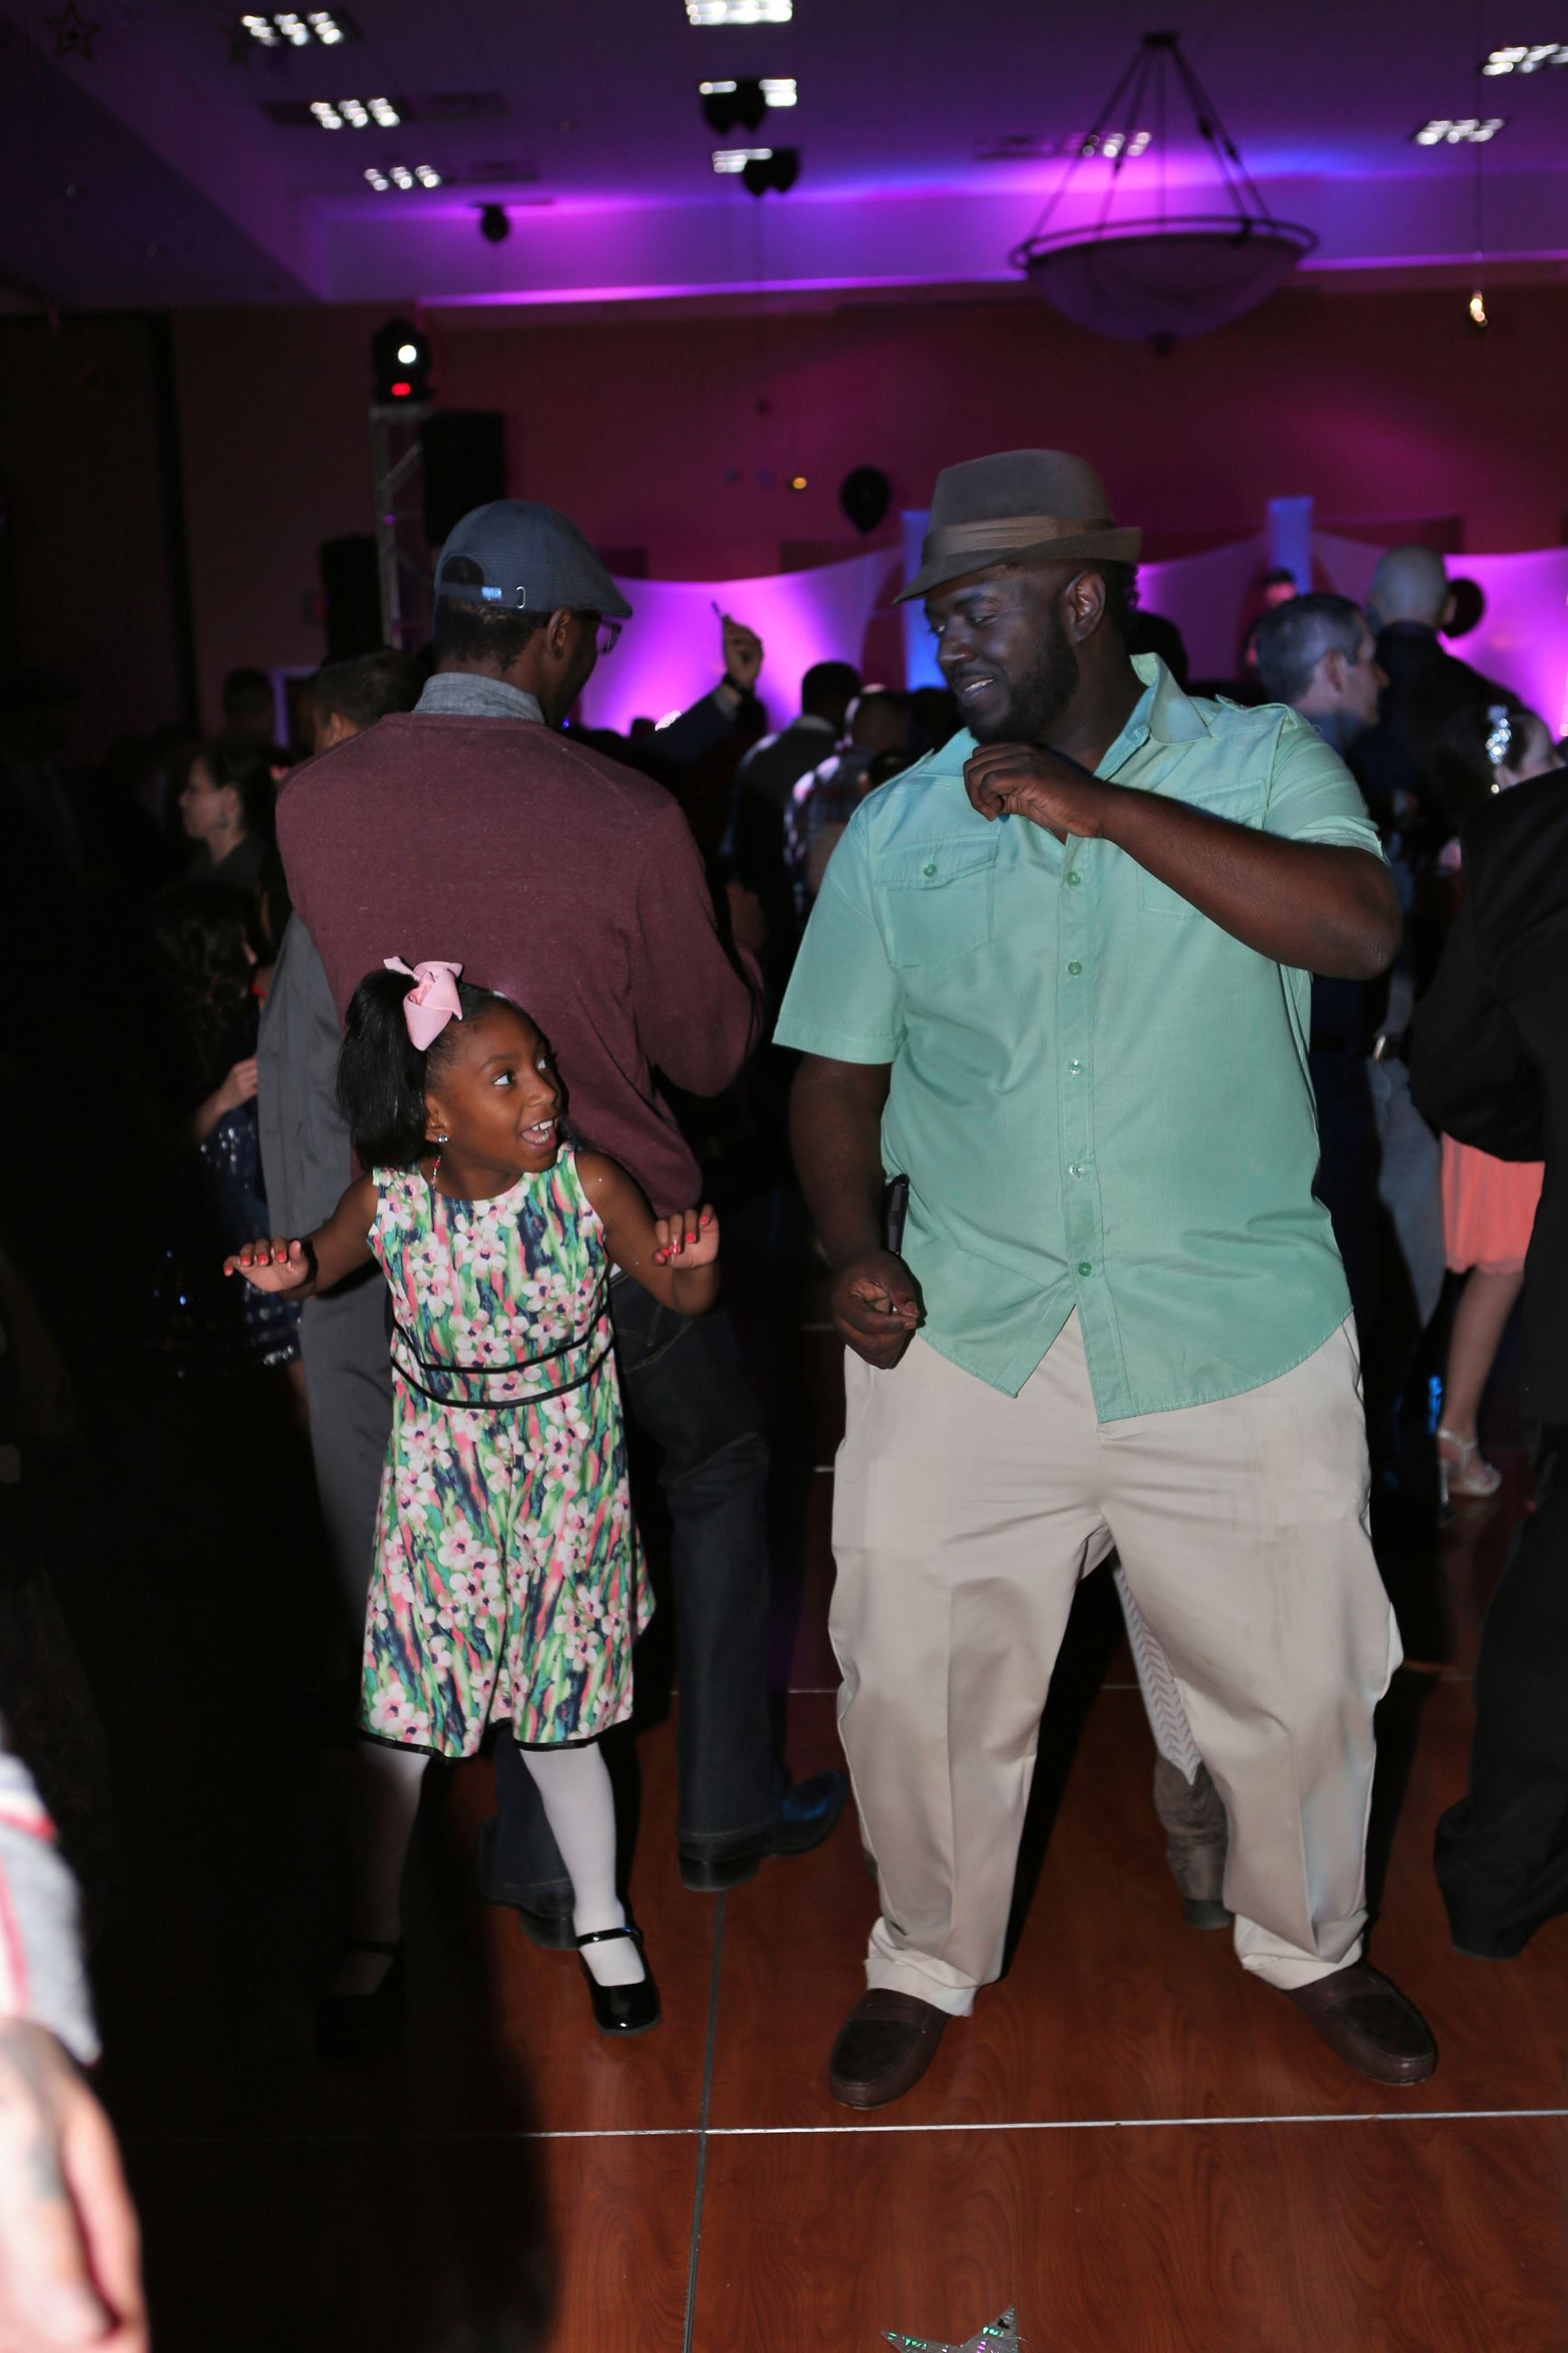 Dad and daughter at 2017 Mesquite dance